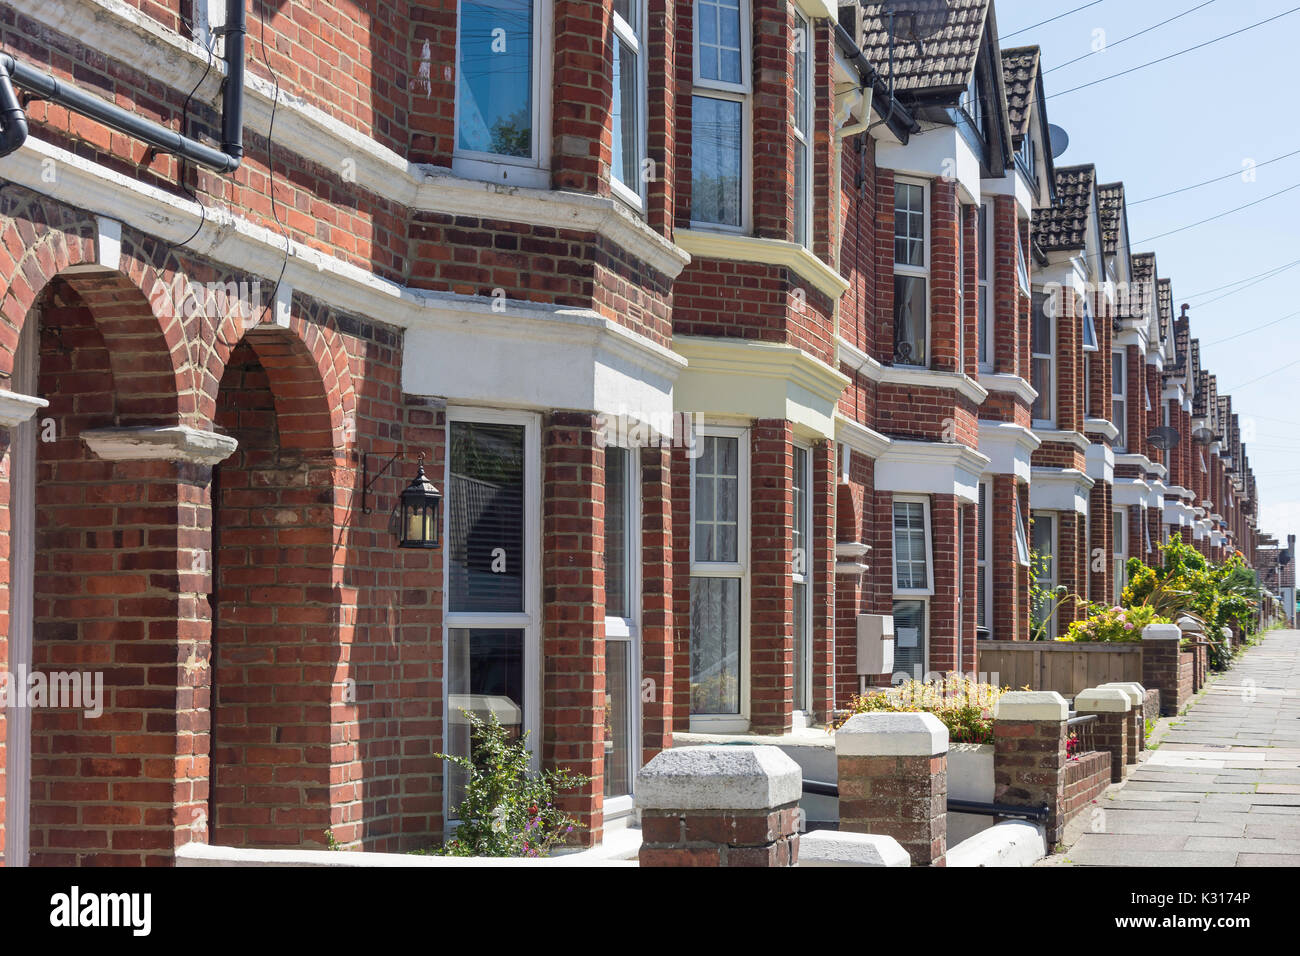 Terraced houses, Normand Road, Newhaven, East Sussex, England, United Kingdom - Stock Image